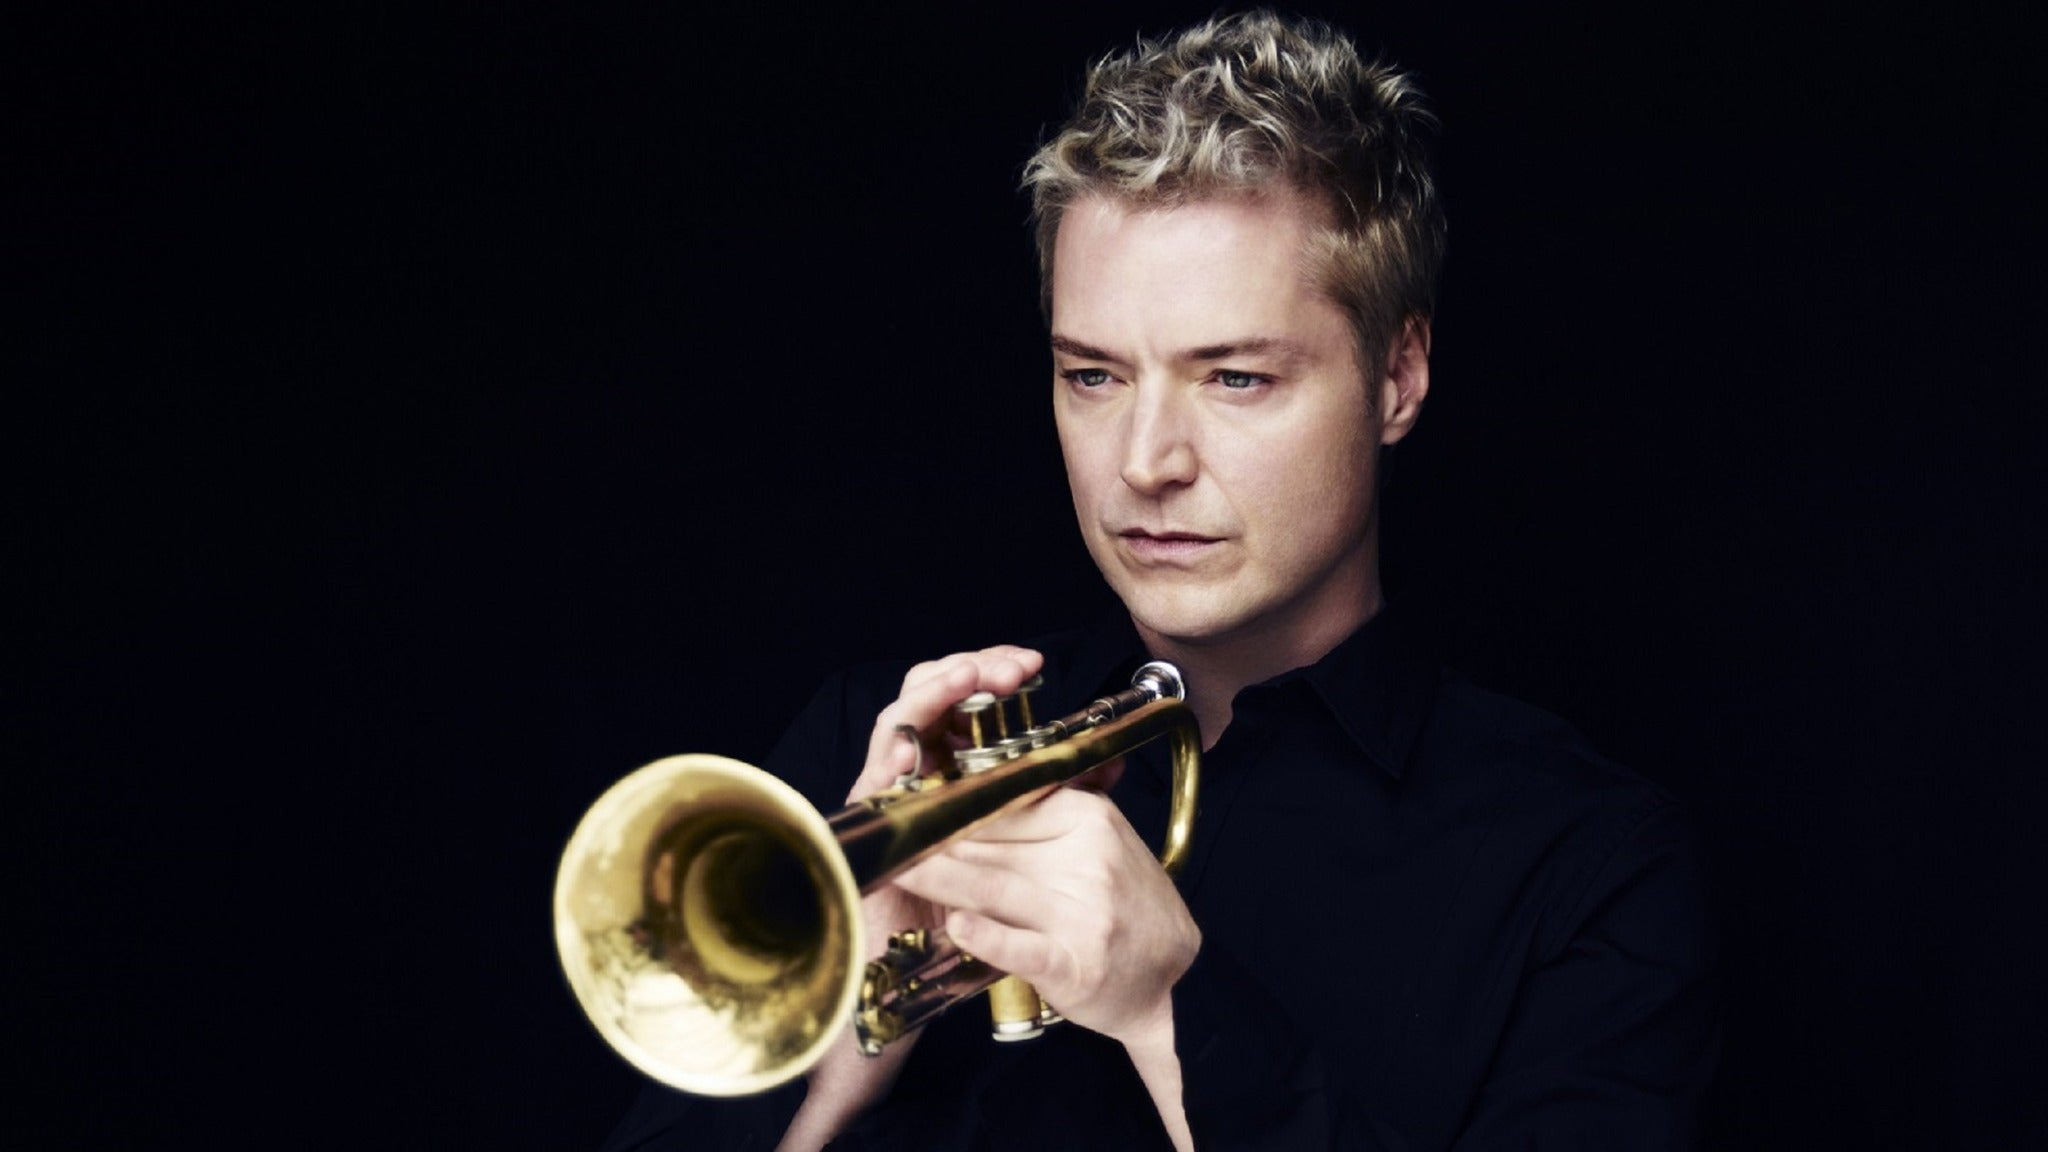 Chris Botti at Sharon L Morse Performing Arts Center